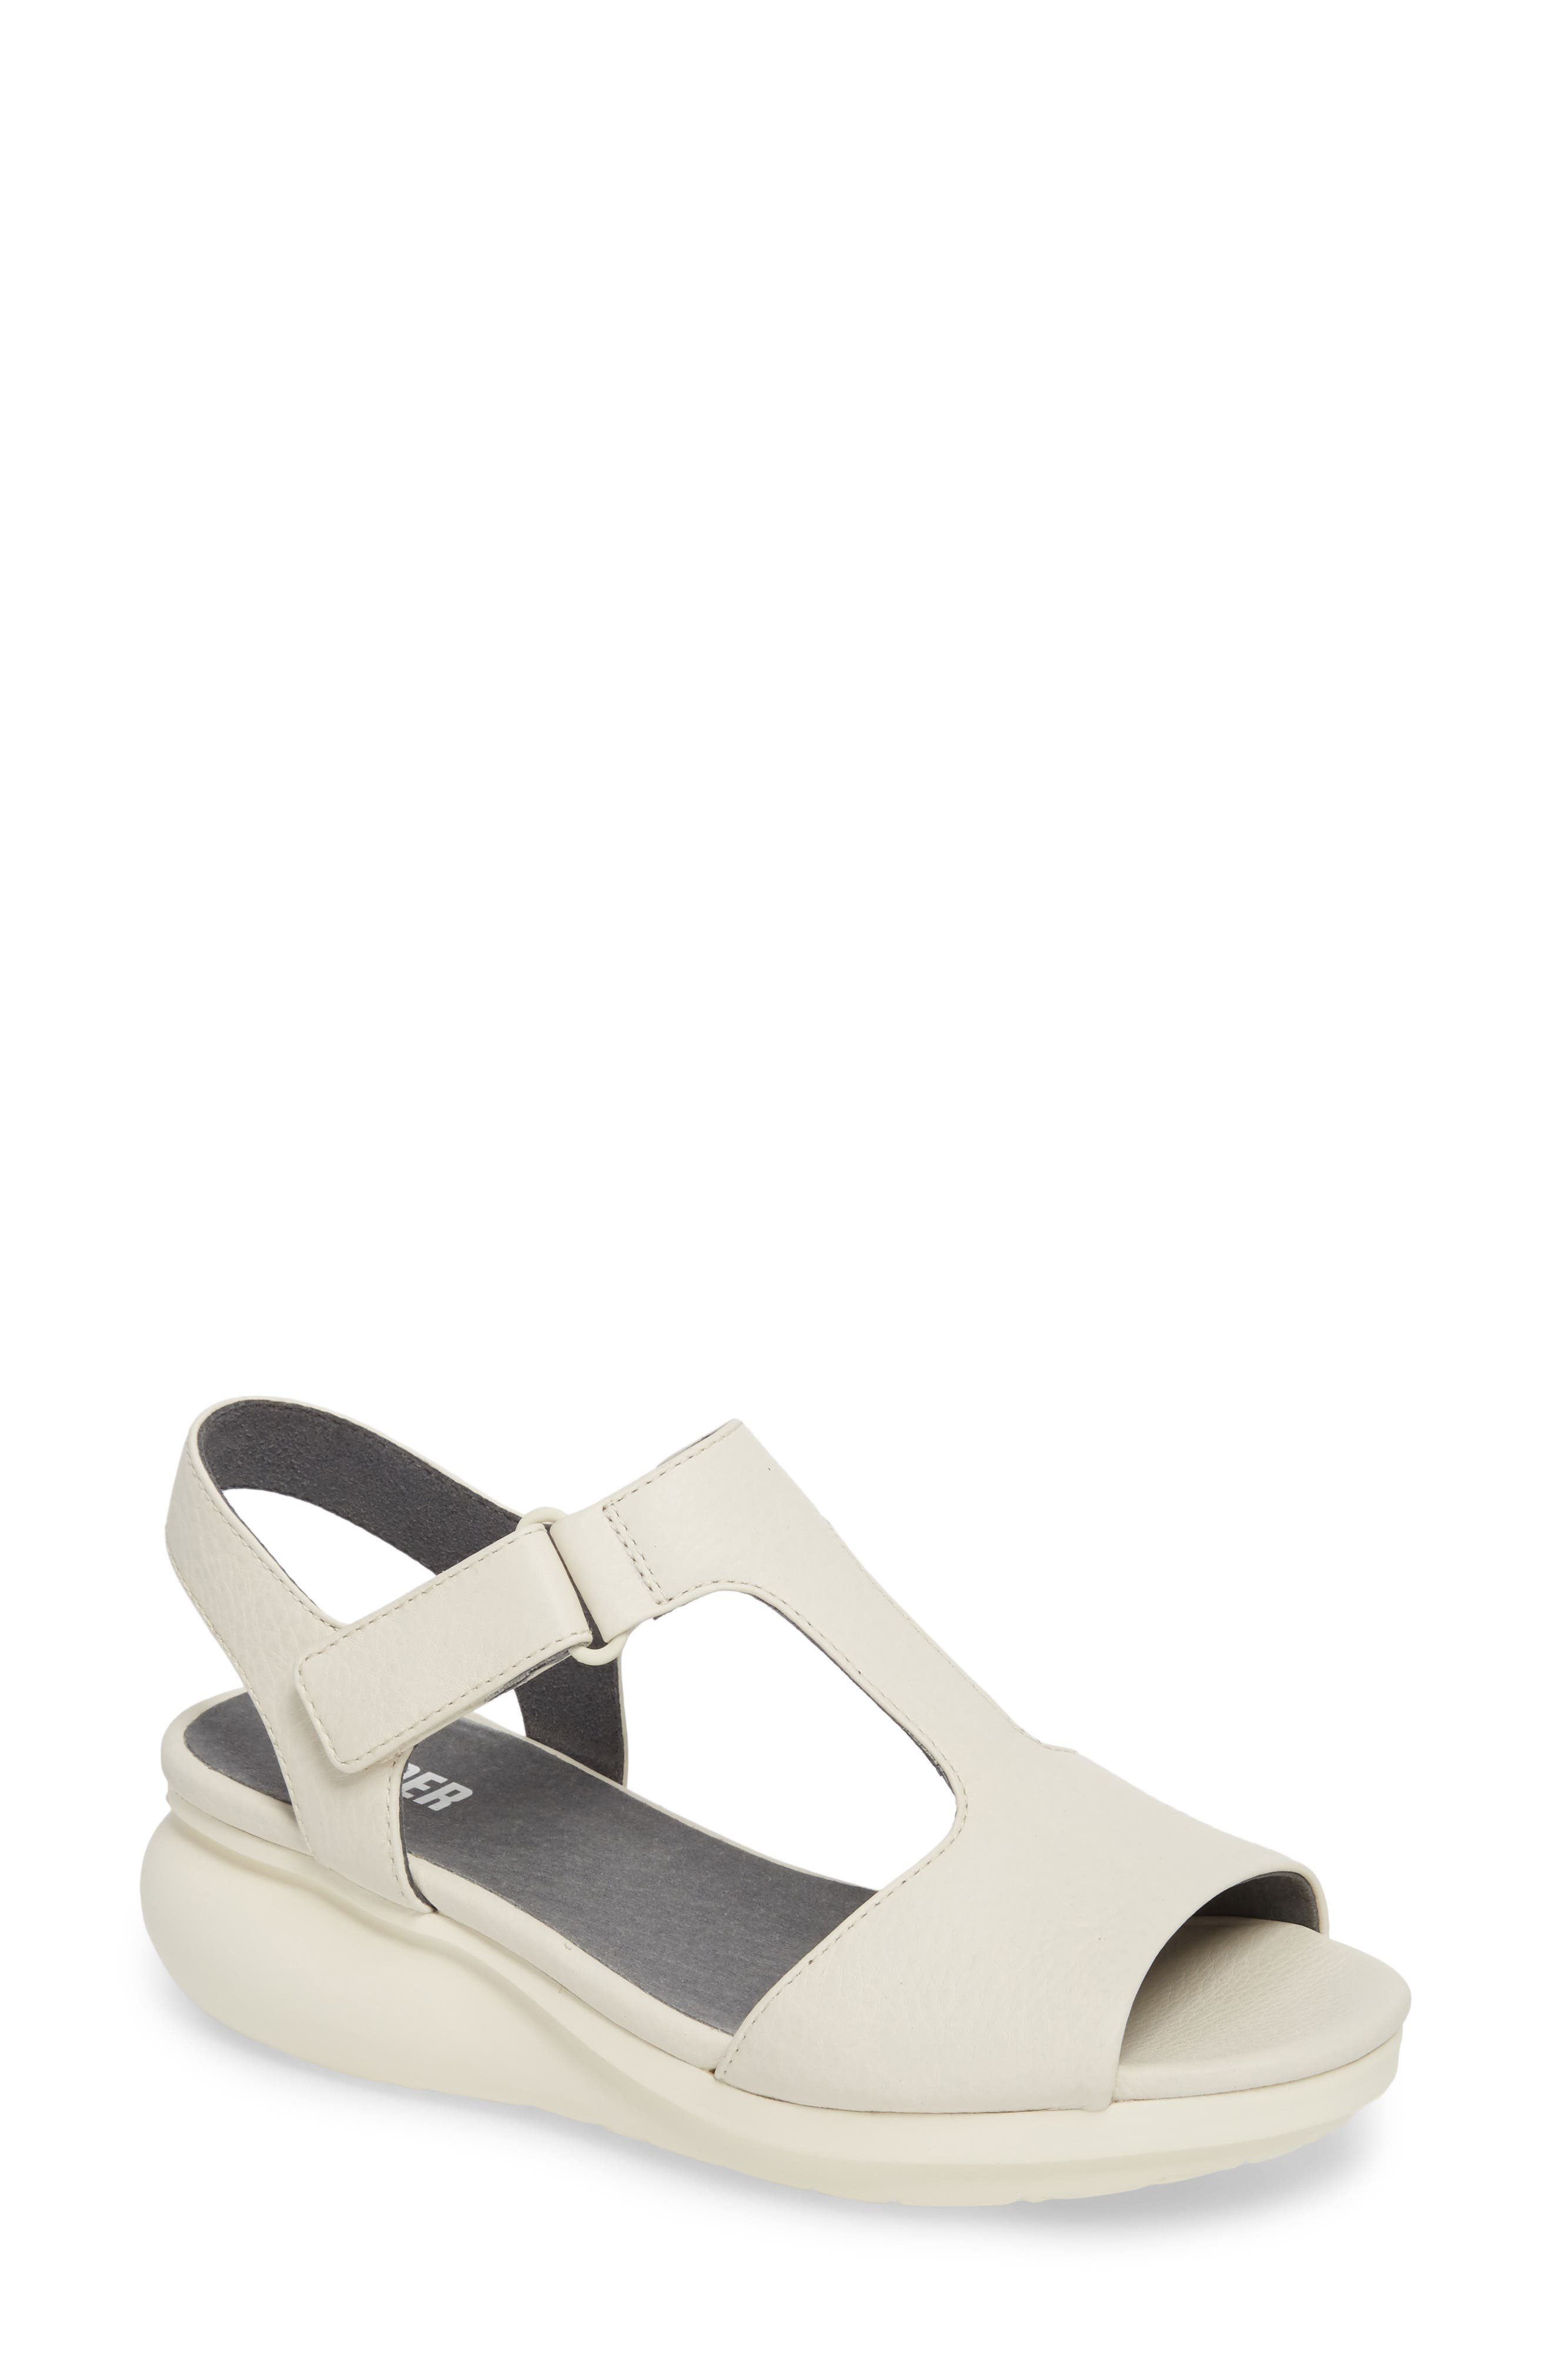 Balloon Wedge Sandal,                         Main,                         color, Light Beige Leather